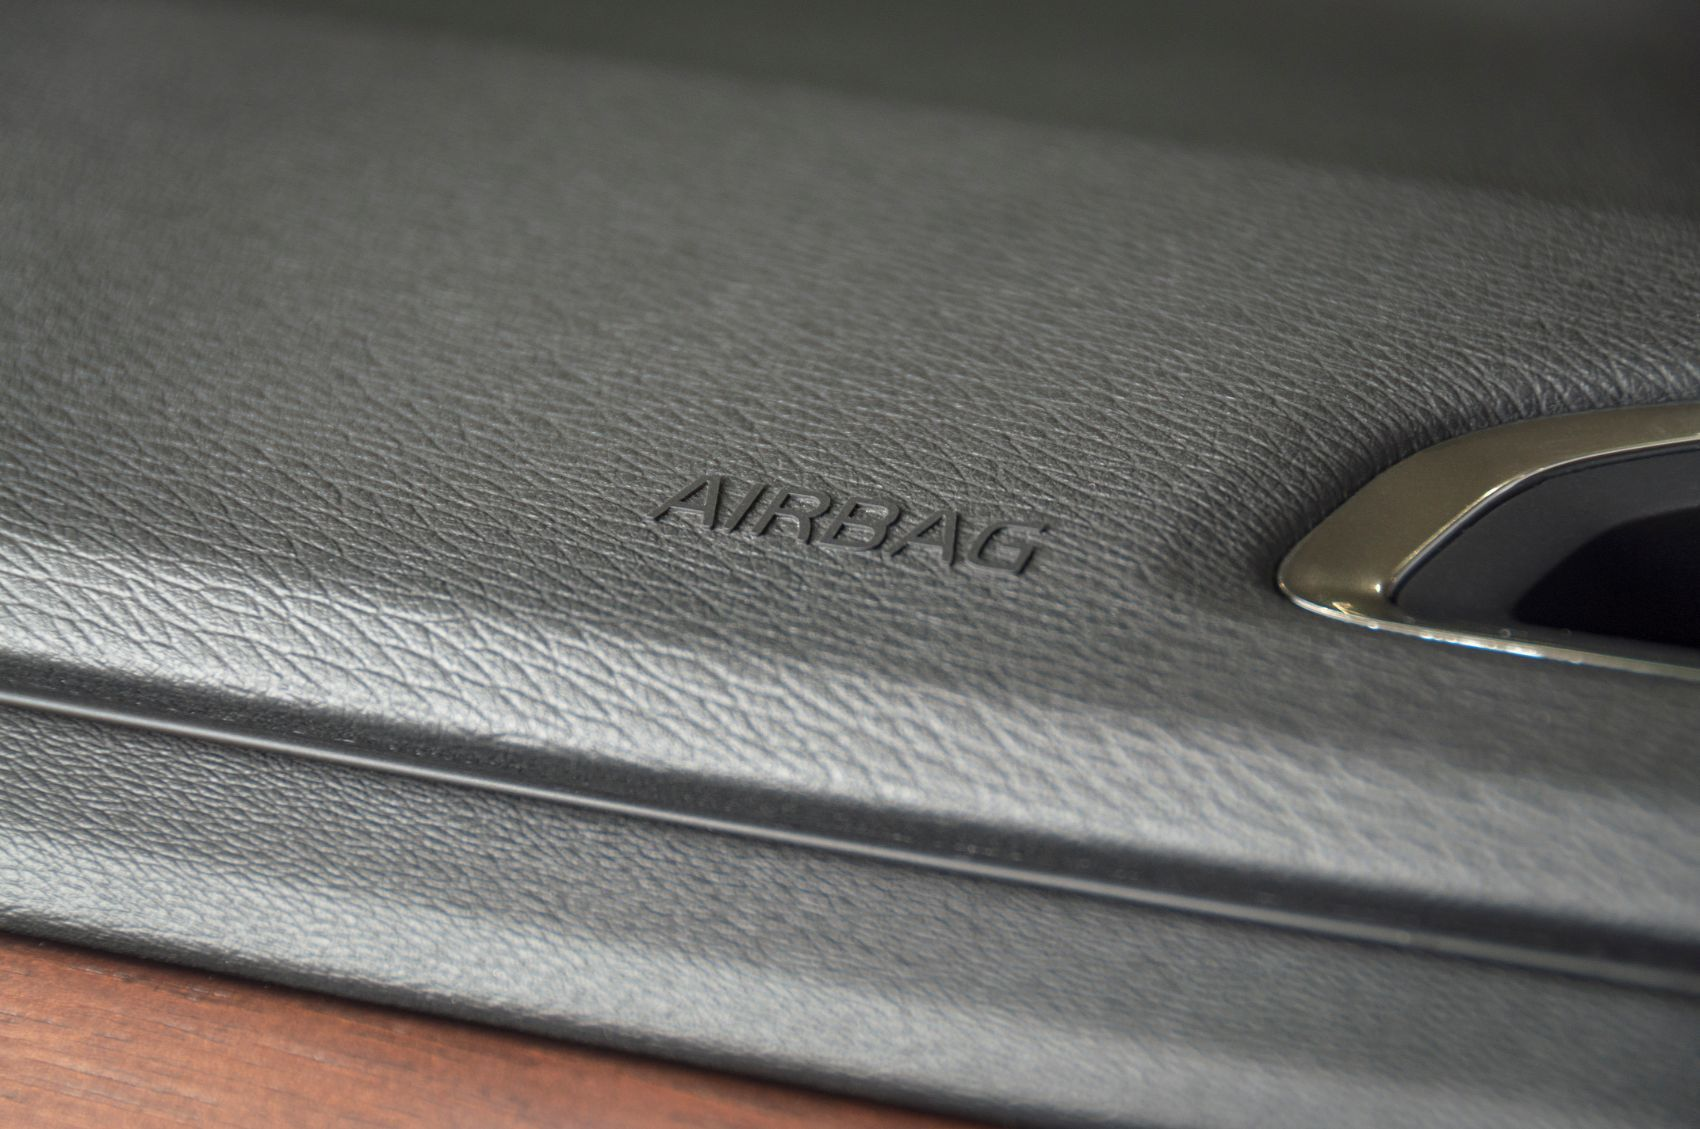 Airbag Recalls: Quick Facts & How To Check Your Car